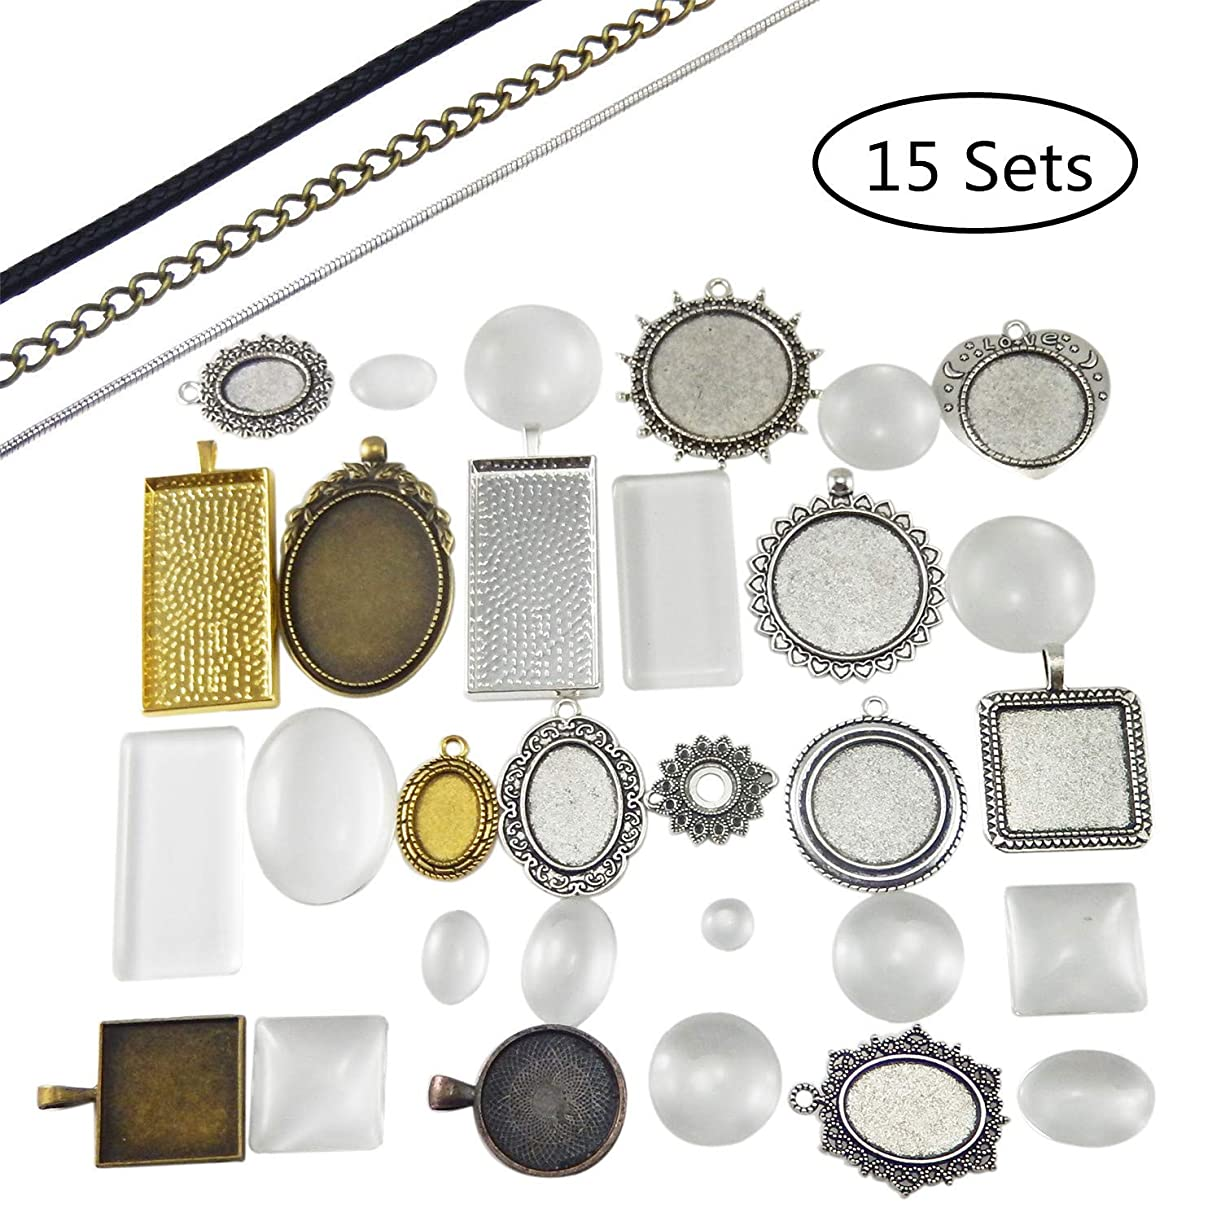 JJG 15 Sets Mixed Setting Tray Pendant with Glass Cabochons Bronze Silver for Jewelry Making, Free 15 Chains ivejk1650